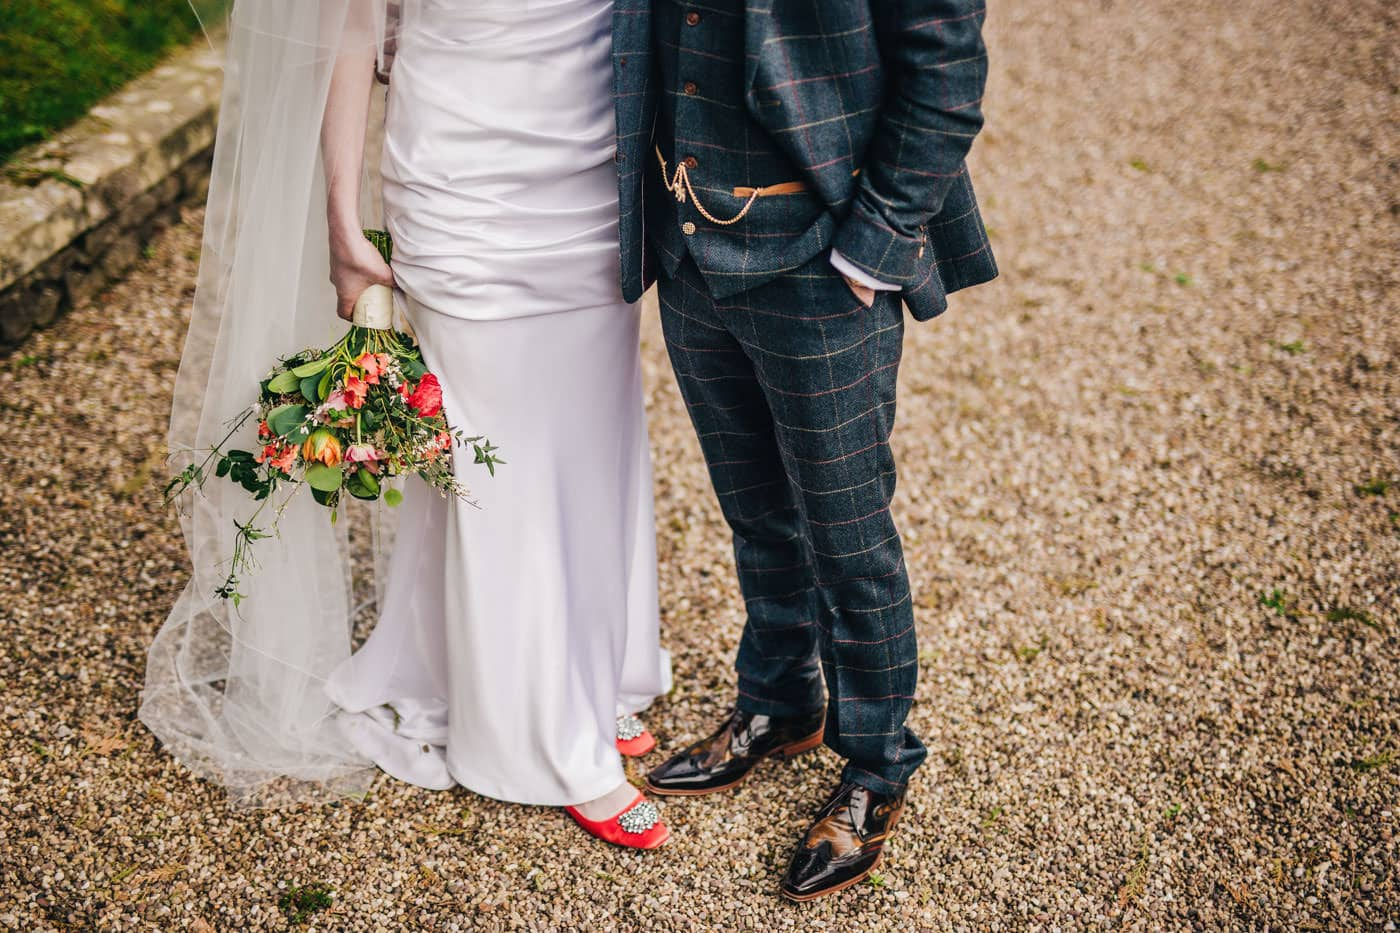 stylish bride and groom - lancashire wedding photographer